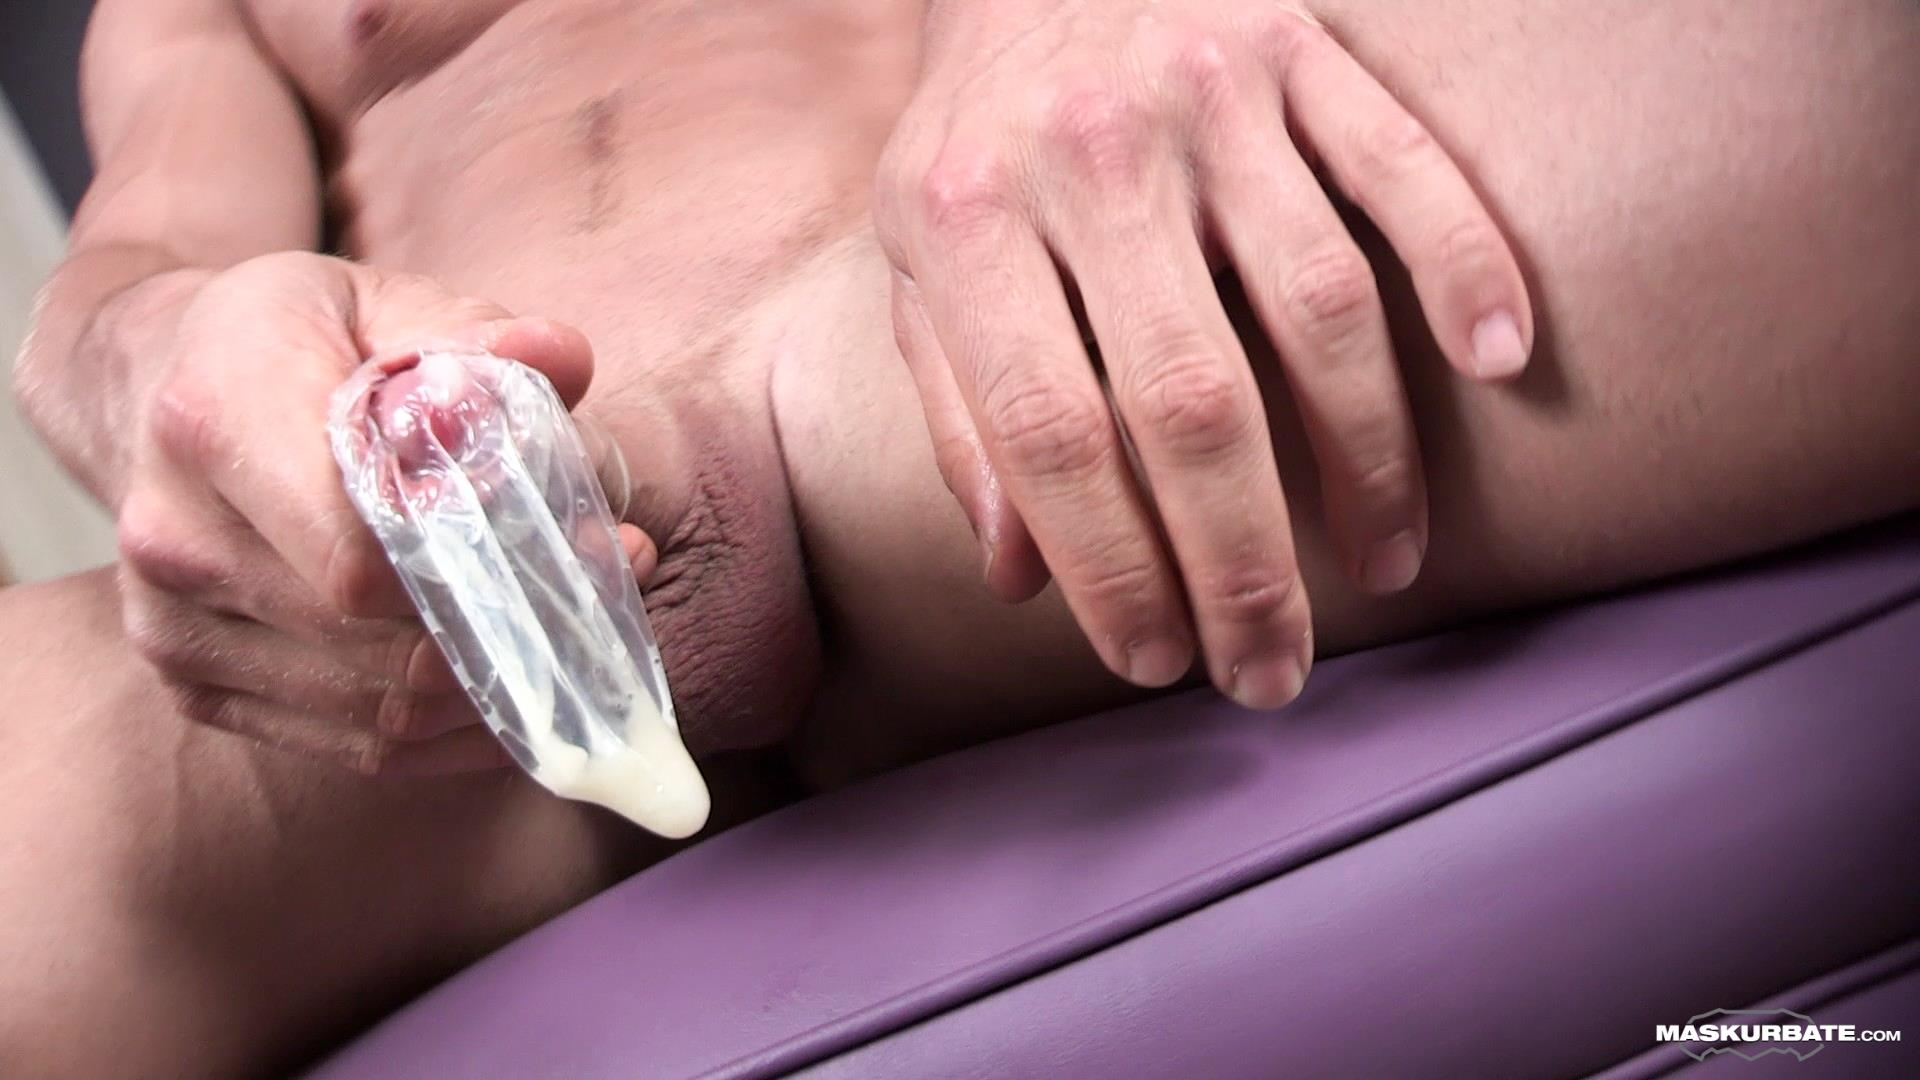 Maskurbate-Brad-and-Pascal-Muscle-Hunk-Jerking-Off-In-A-Condom-09 Straight Masked Muscle Hunk Gets Paid To Jerk Off In A Condom